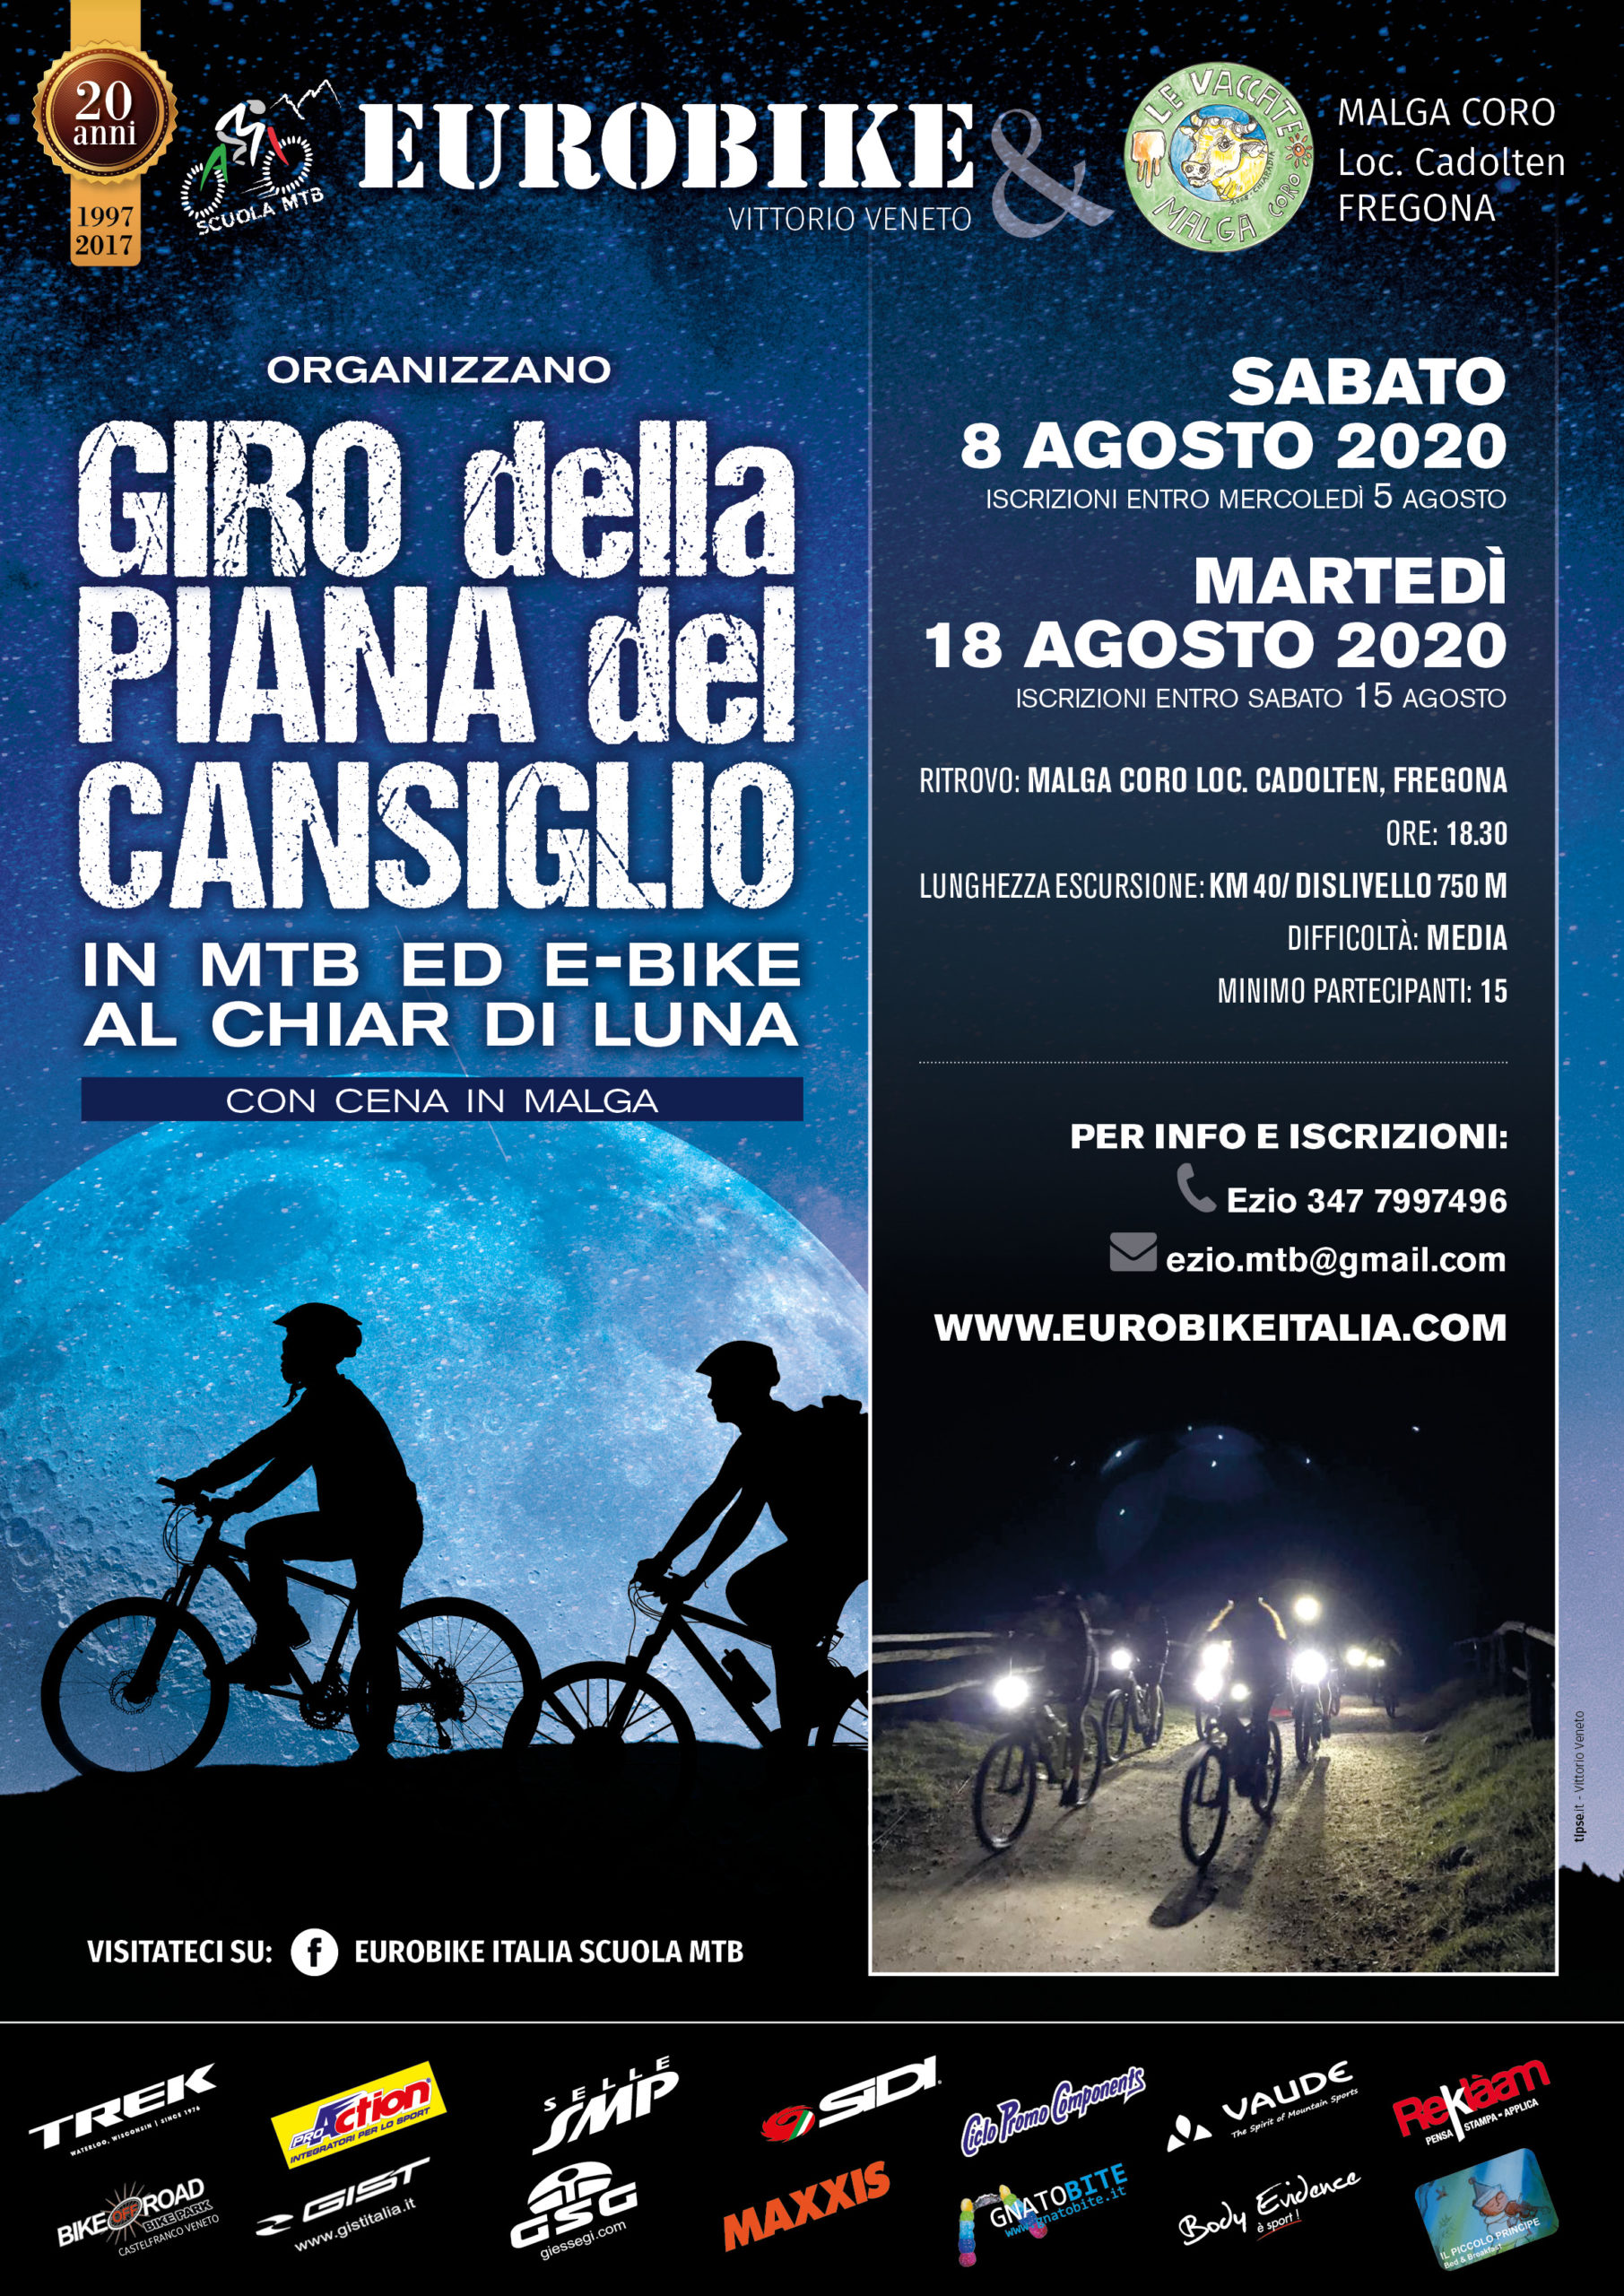 Agosto 2020: Notturna in Cansiglio